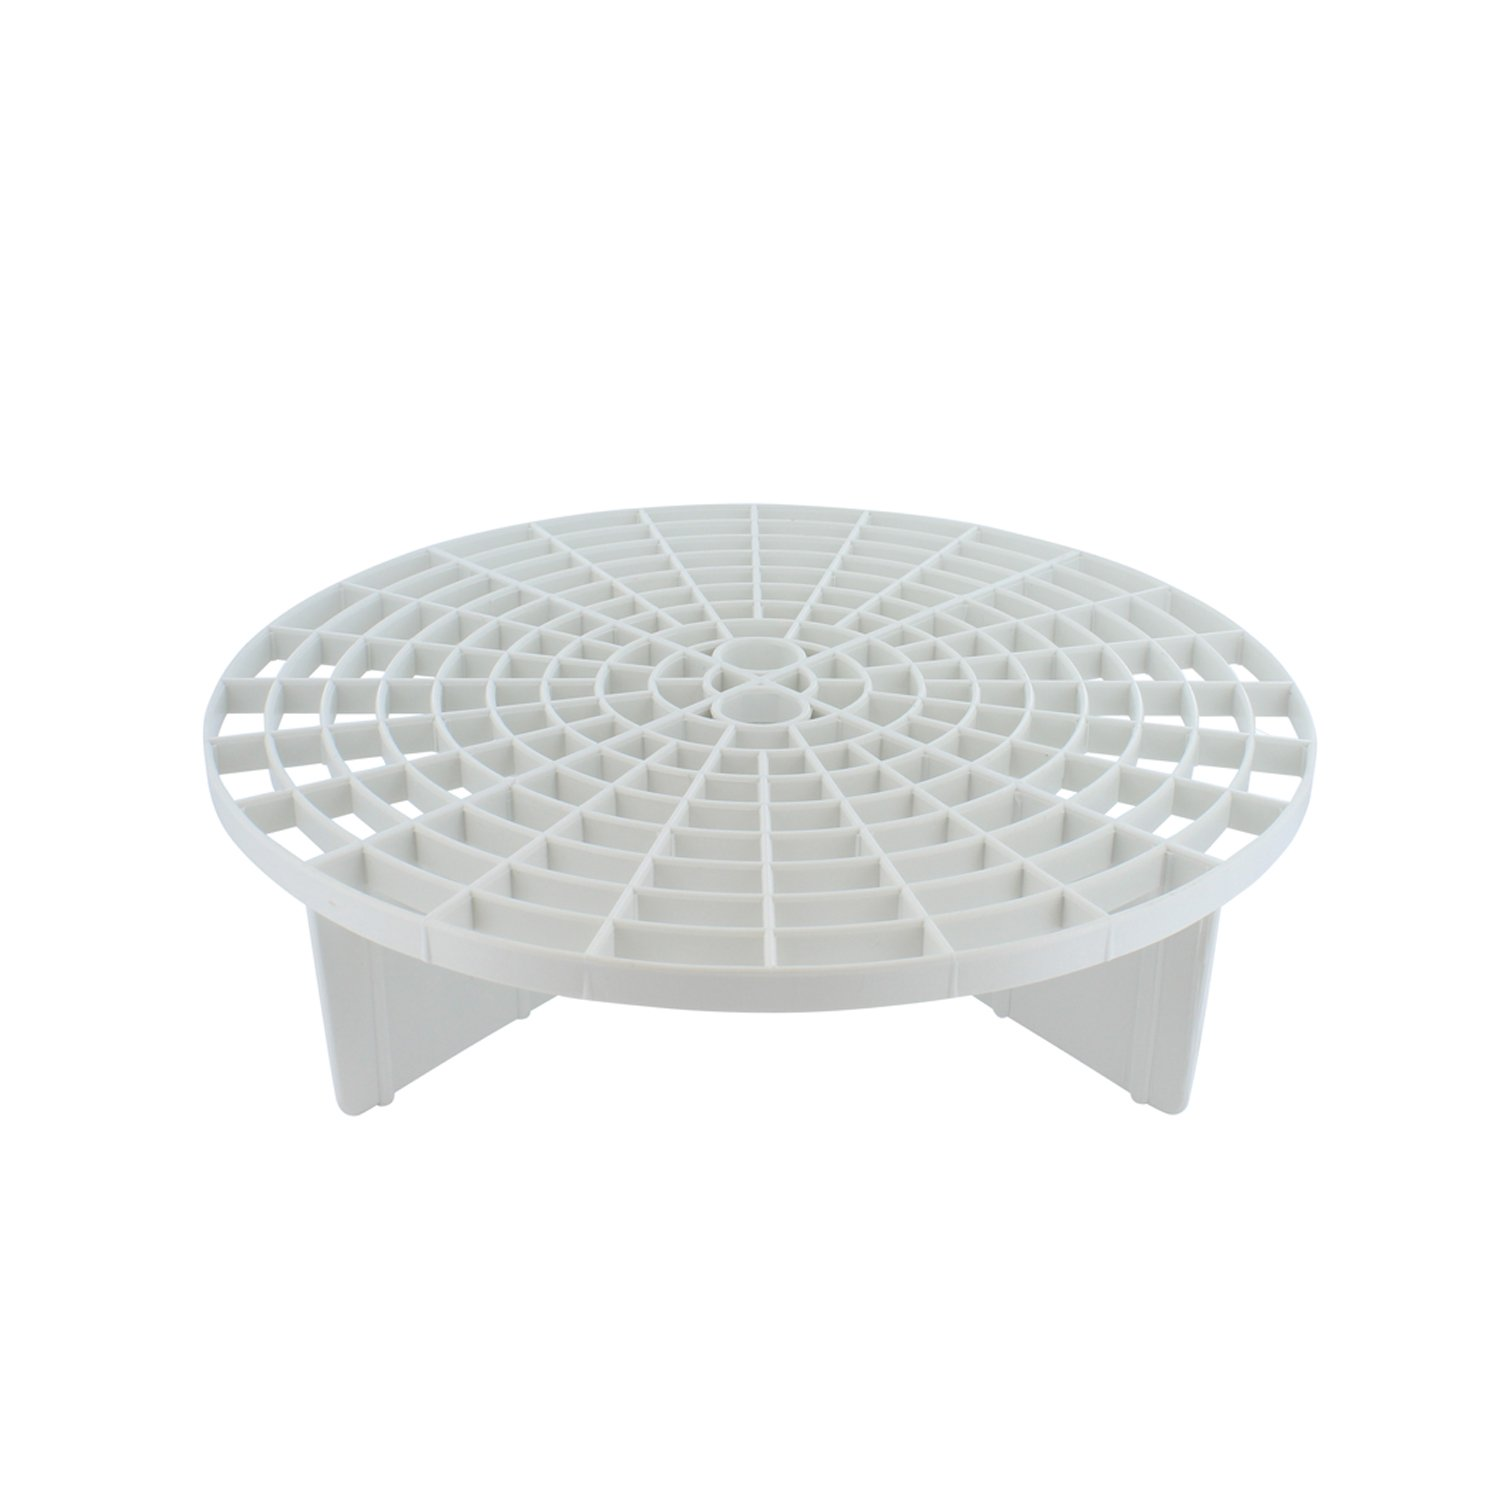 Grit Guard Bucket Insert White - Separate Dirt From Your Sponge While Washing Your Car Fits 12 Inch Diameter Buckets